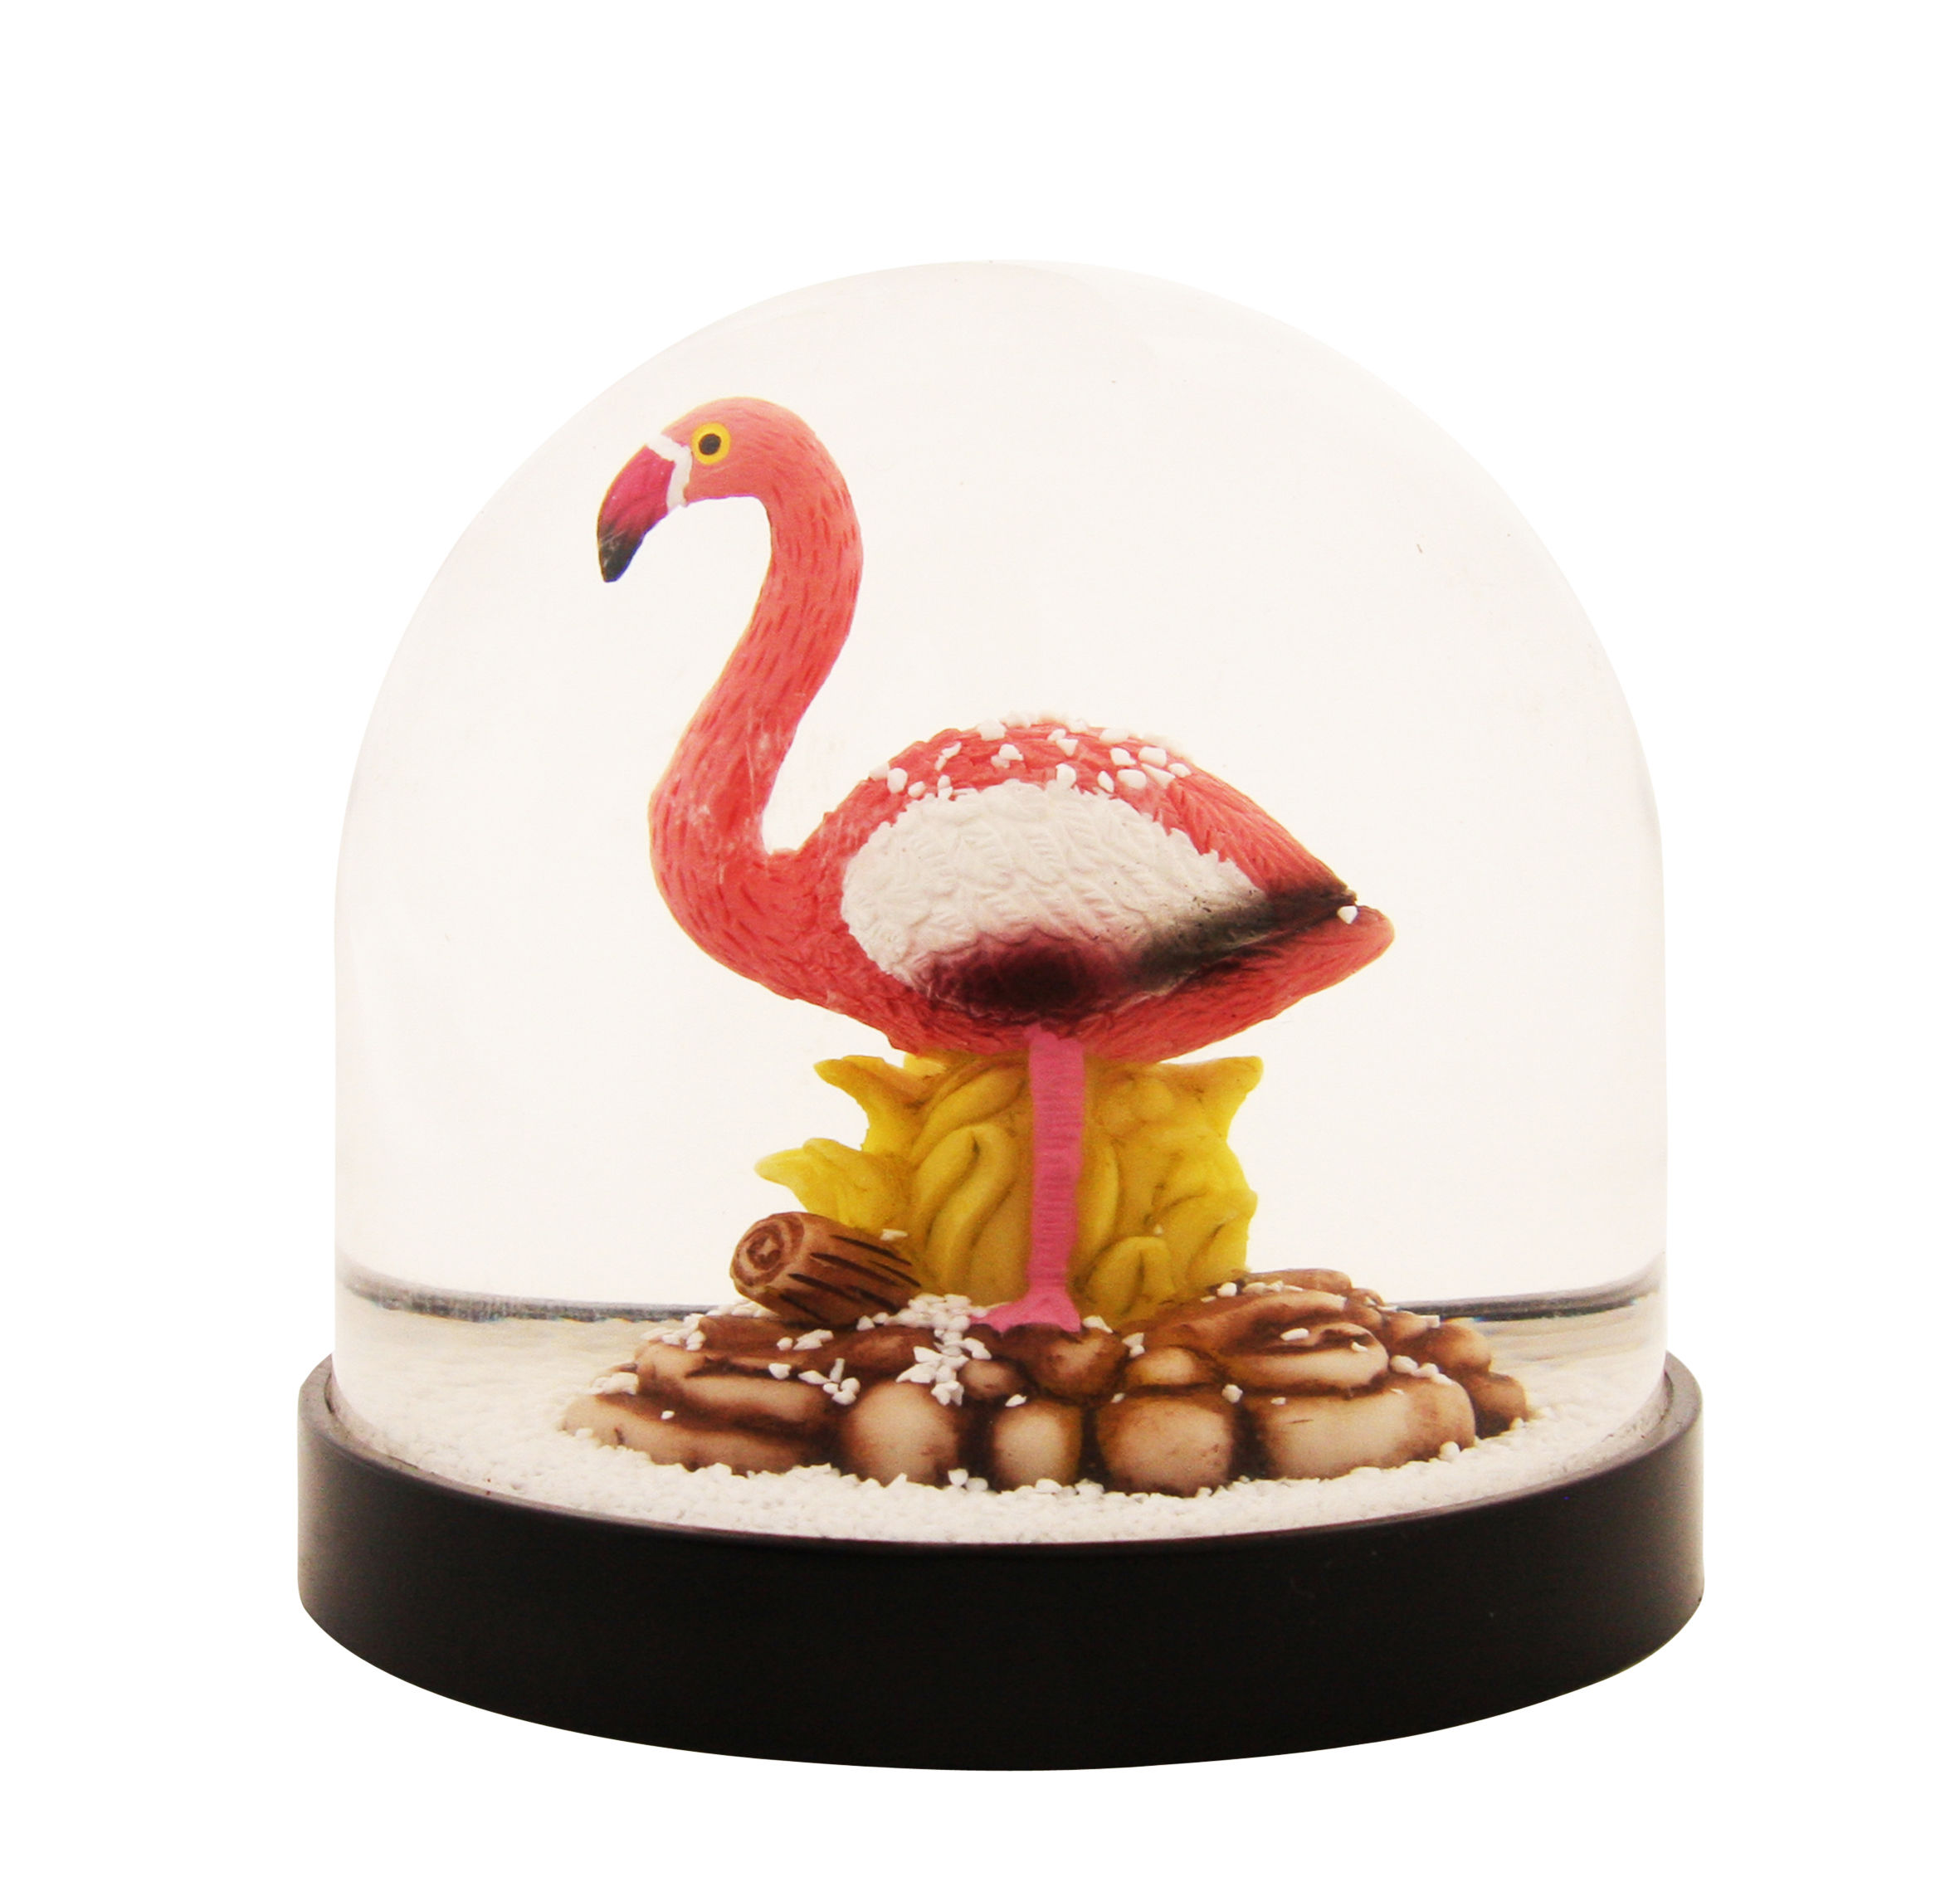 Decoration - Children's Home Accessories - Snowball - Flaming lip by & klevering - Flaming lip - Plastic